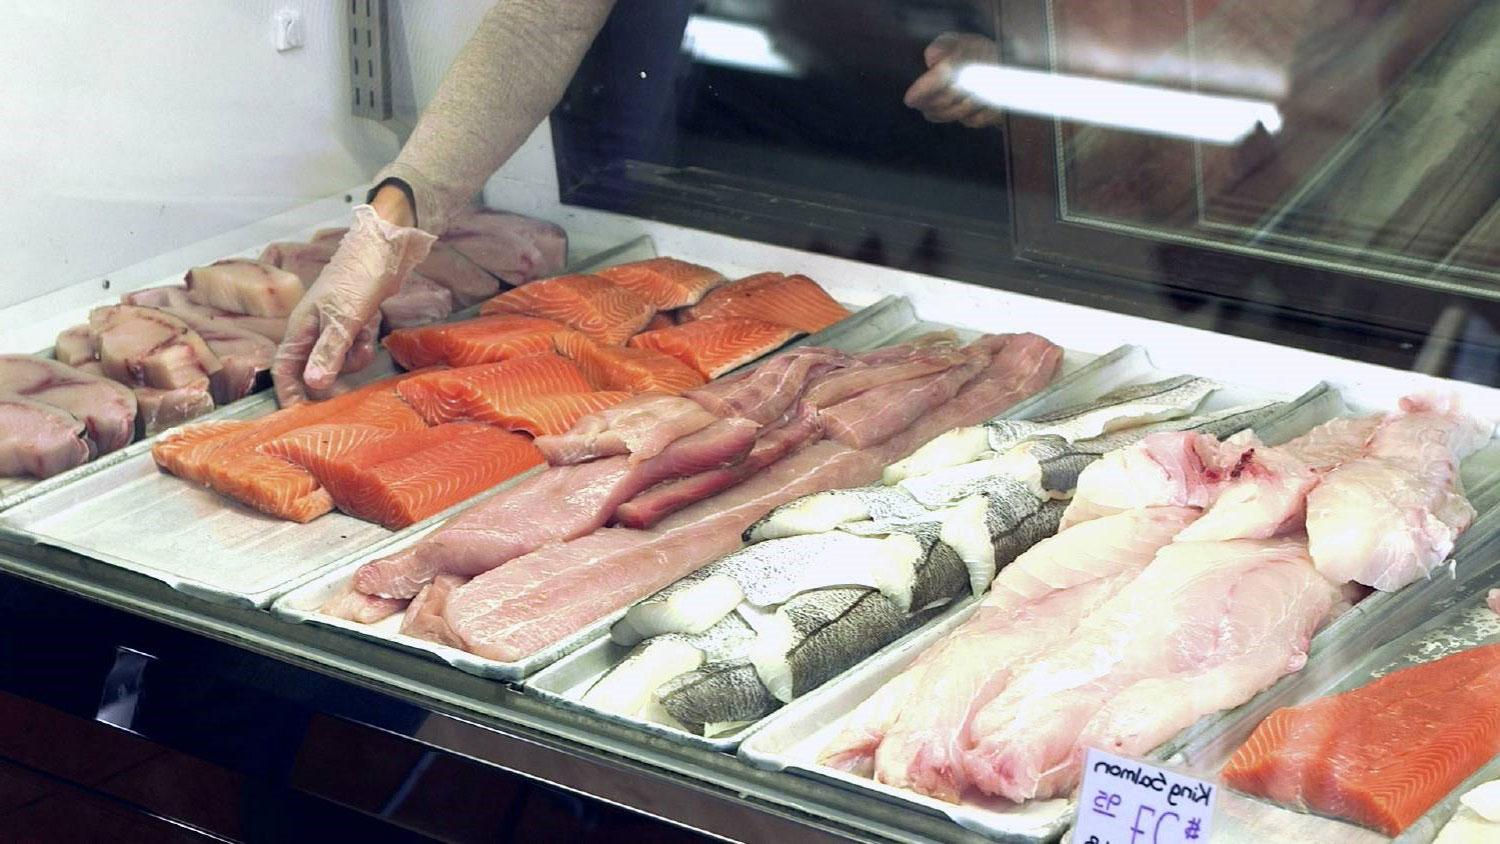 Worker reaching into fish market display